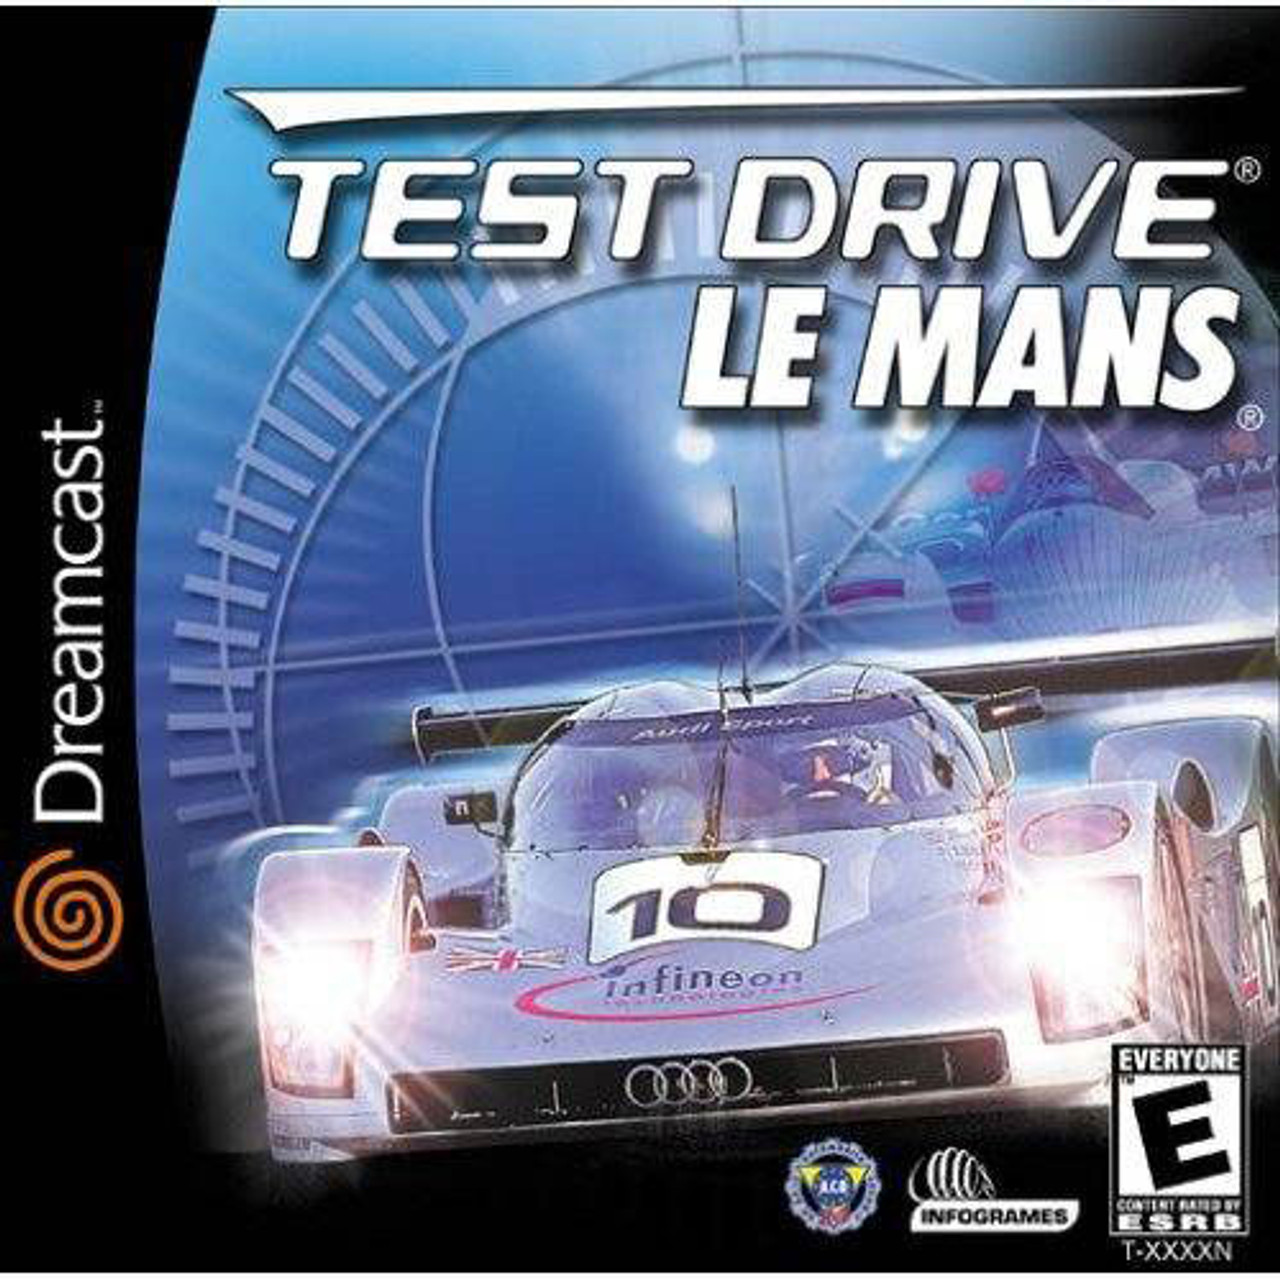 test drive le mans dreamcast game for sale dkoldies. Black Bedroom Furniture Sets. Home Design Ideas